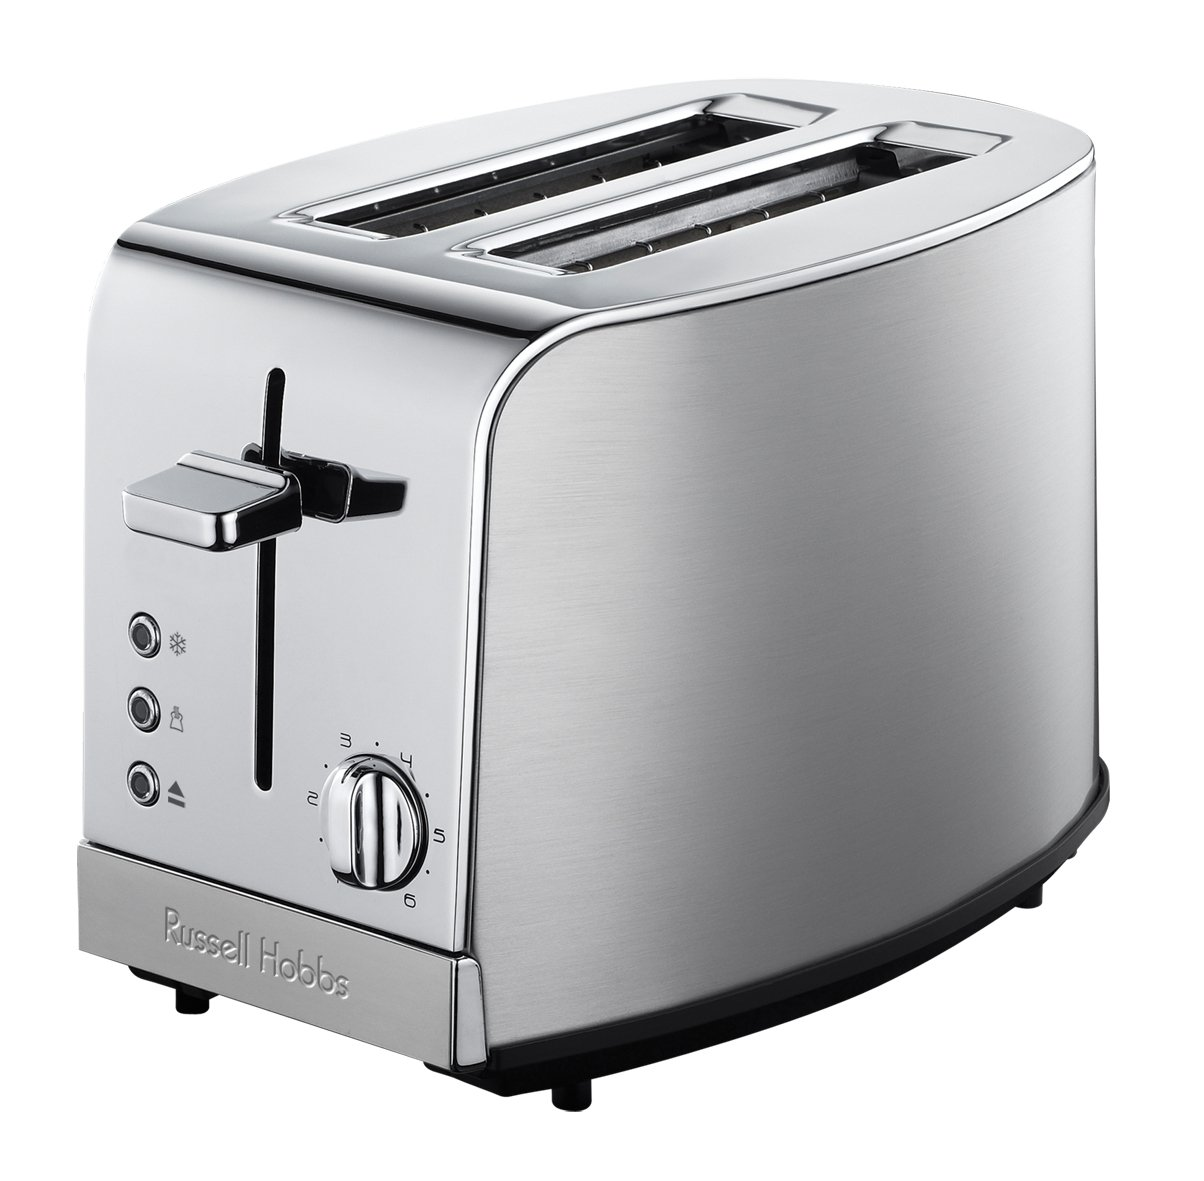 toaster russel hobbs deluxe metallic silber chrom 2 scheiben toast 18116 grill ebay. Black Bedroom Furniture Sets. Home Design Ideas